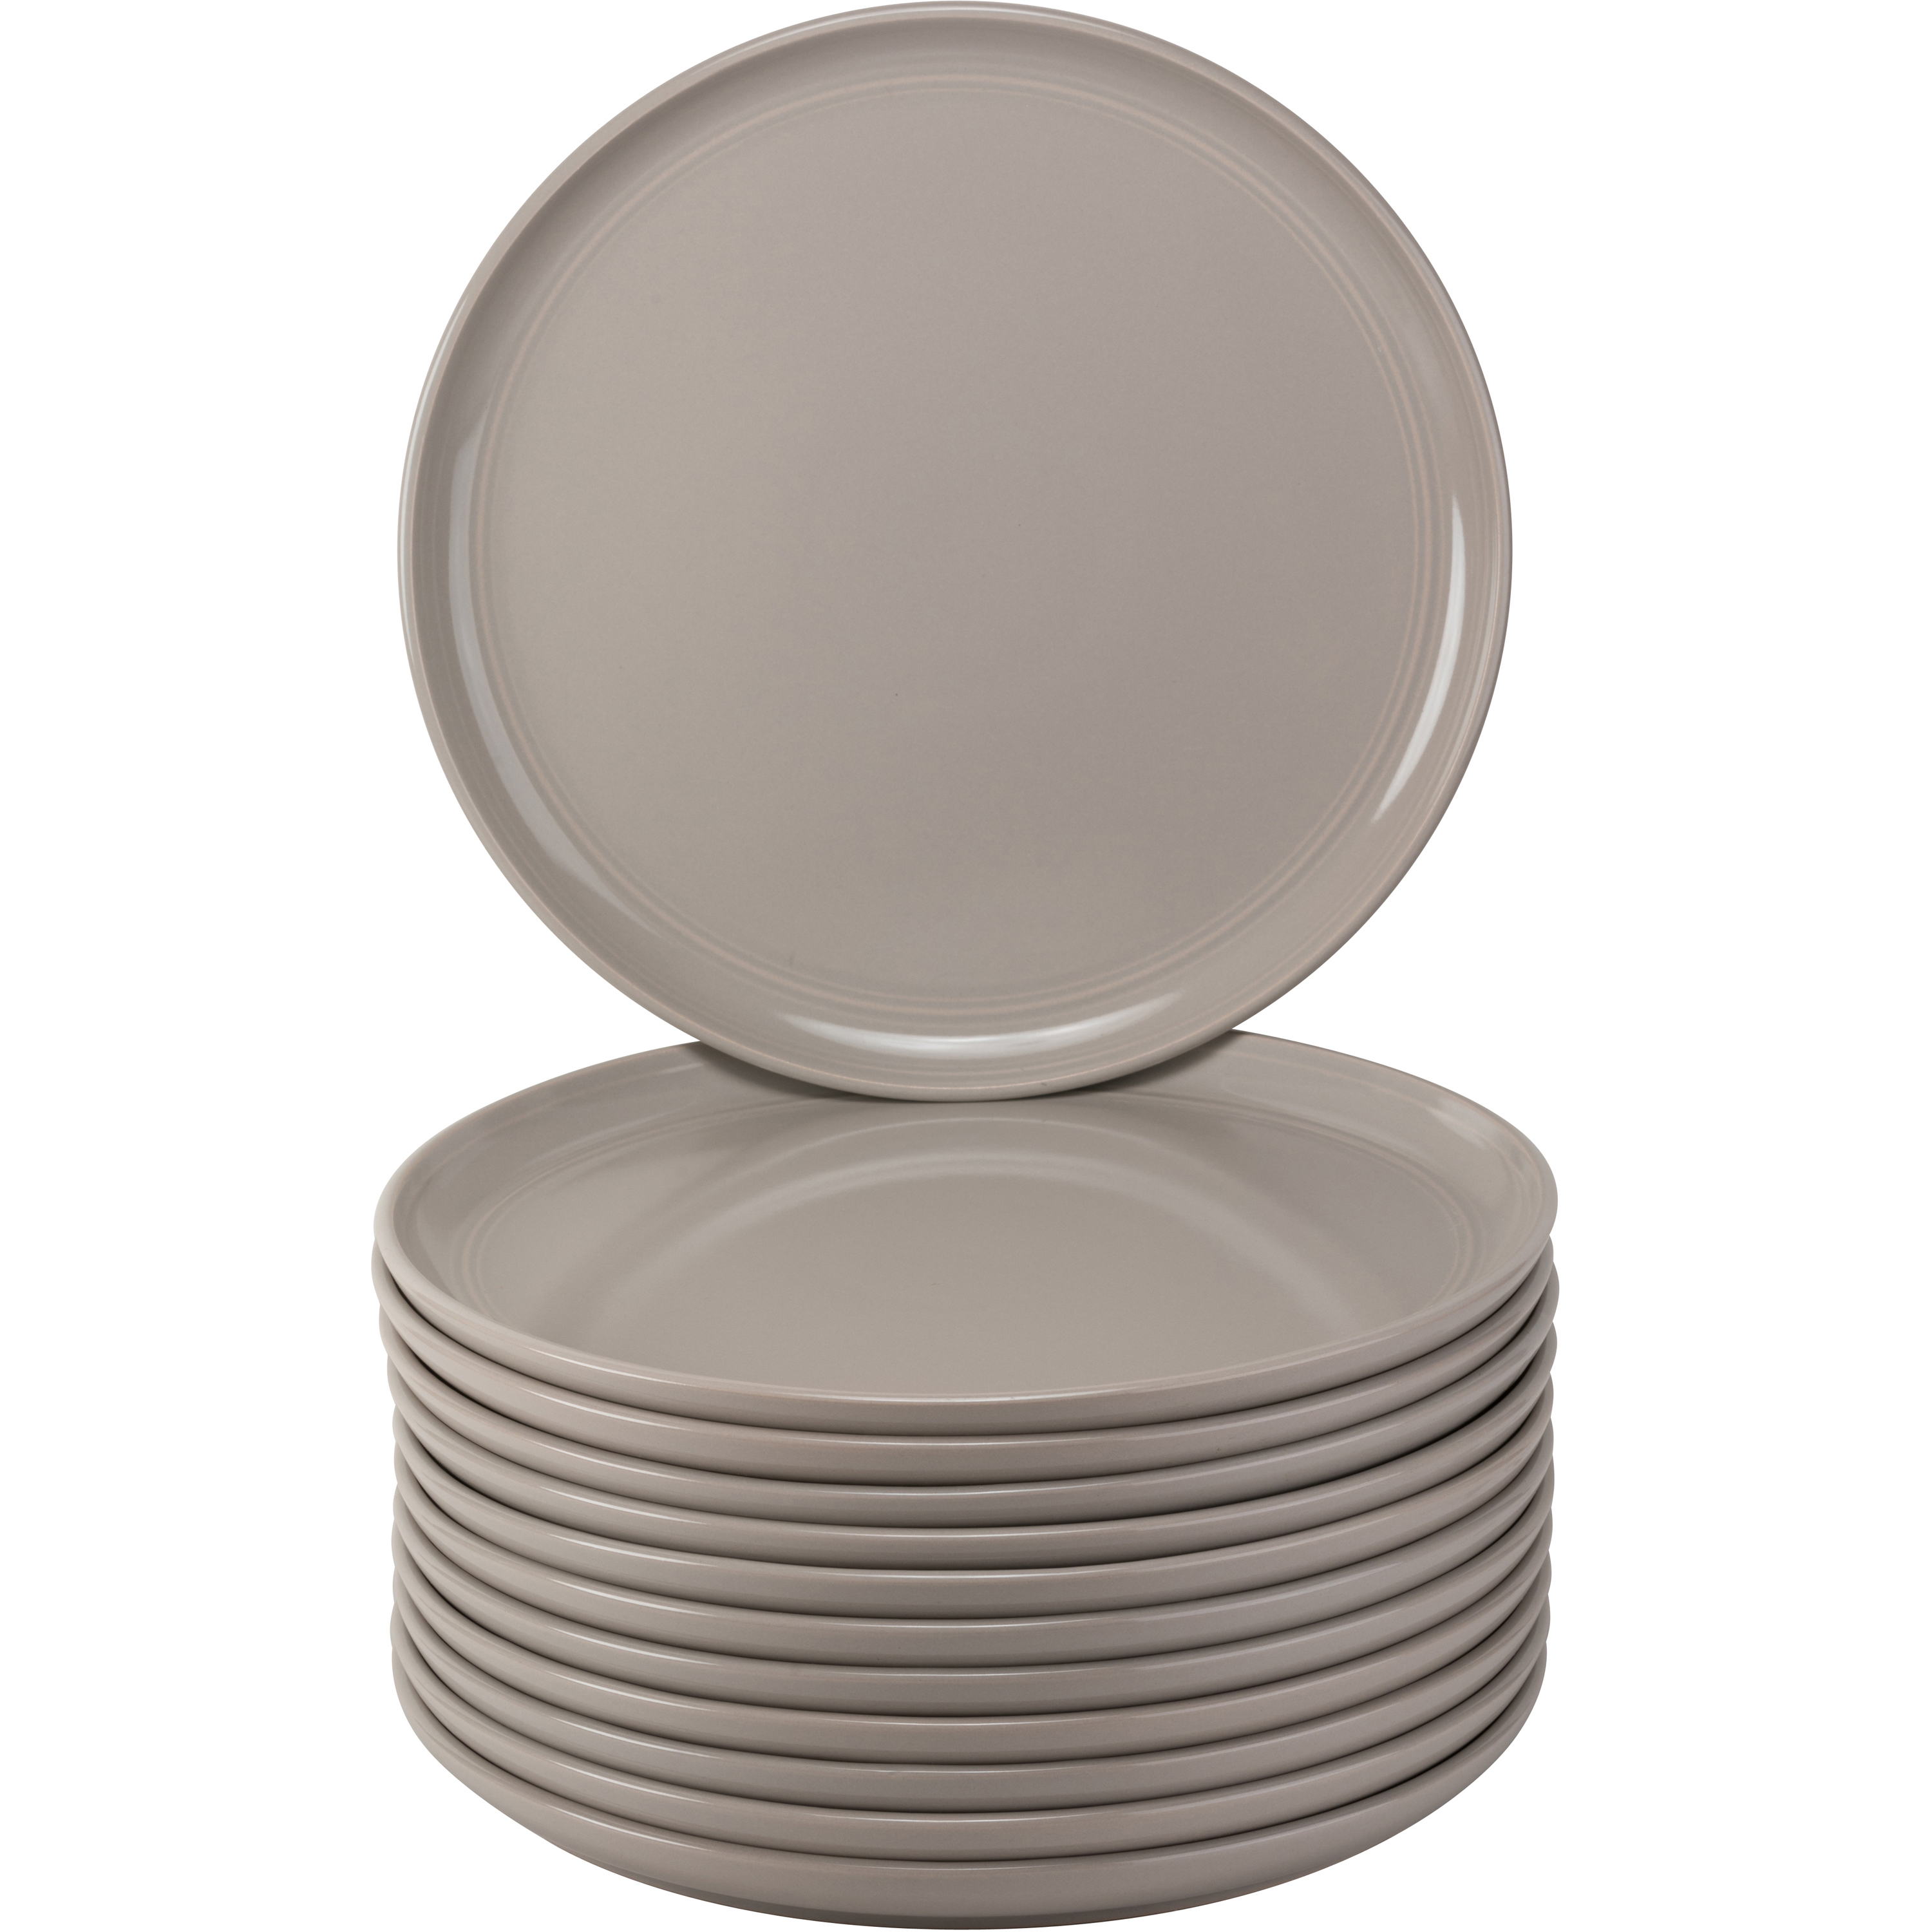 10 Strawberry Street Double Line Catering Pack, Set of 12 Gray Dinner Plates 10.25""